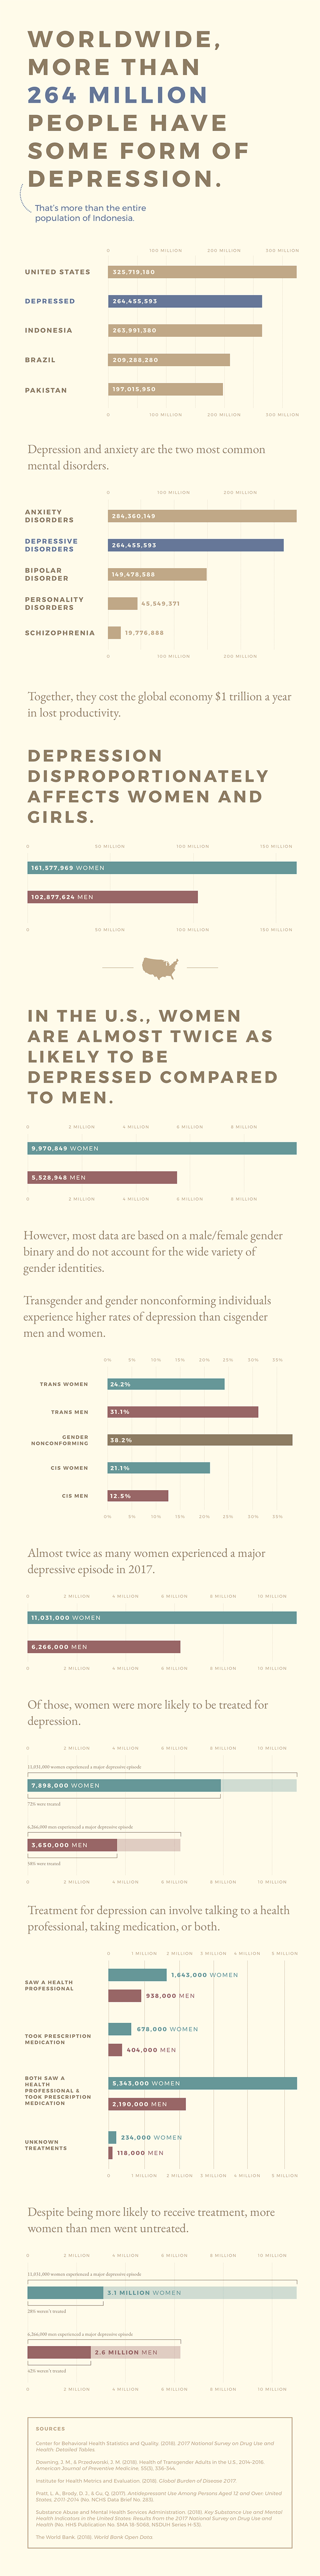 Infographic Illustrating Depression Statistics in the Context of Gender